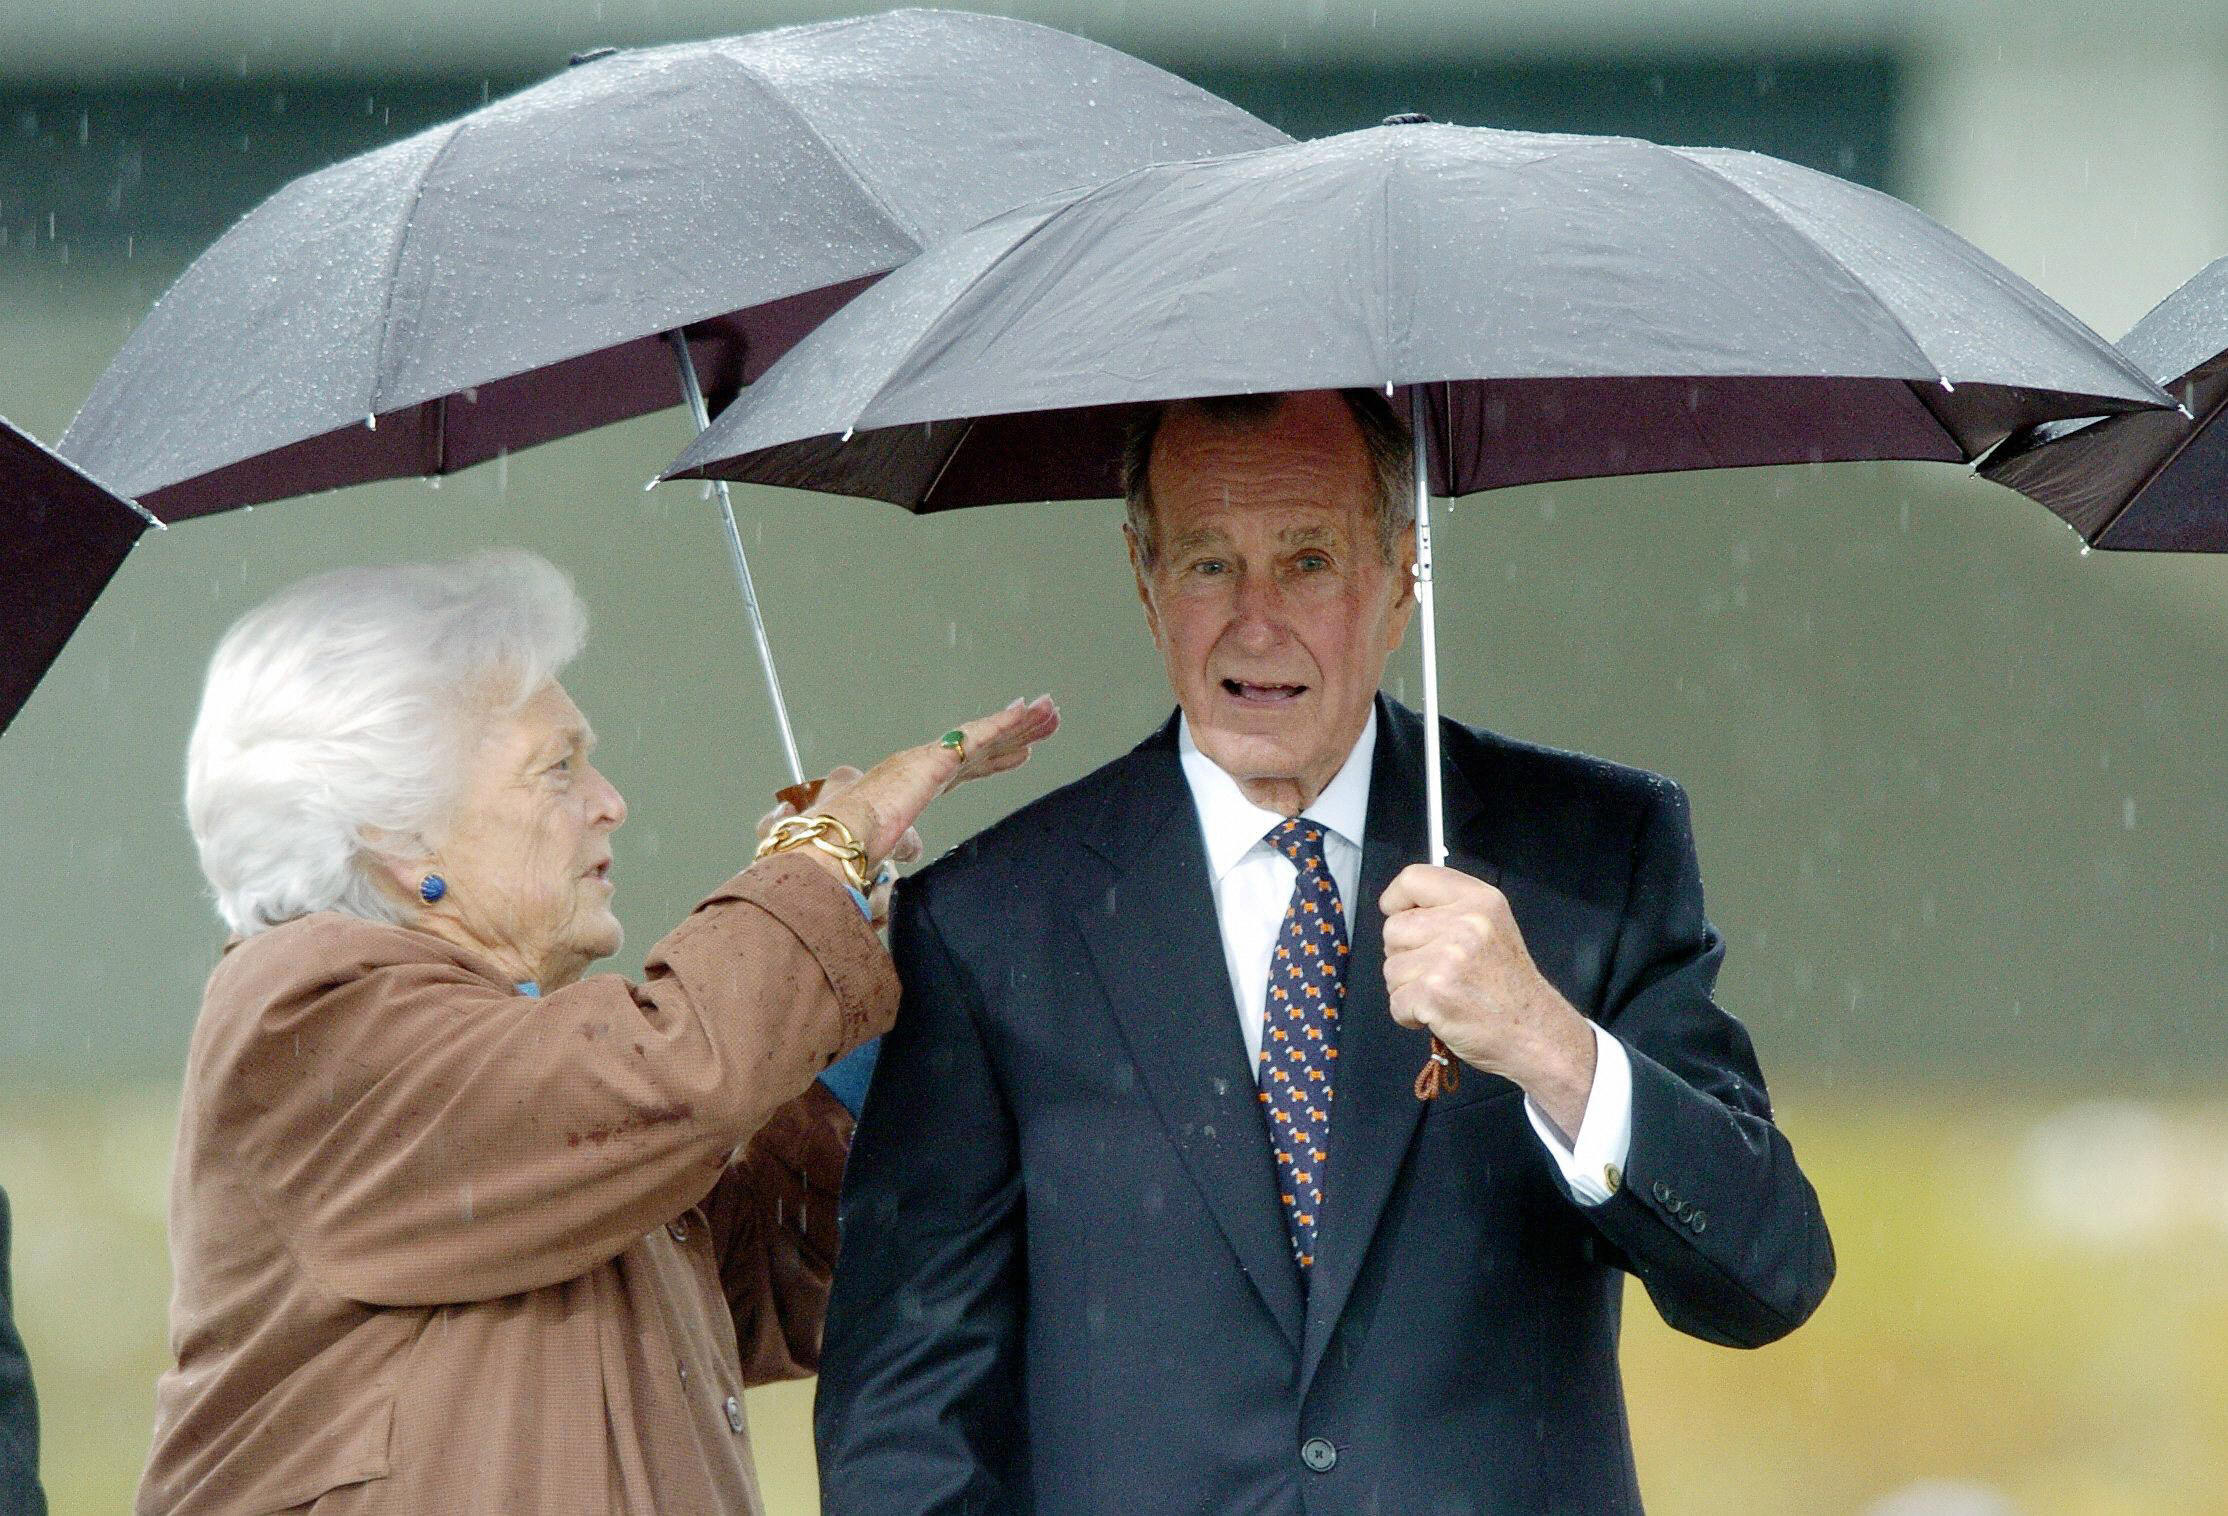 Barbara Bush wipes water off the shoulder of her husband former President George H.W. Bush during the inauguration of the William J. Clinton Presidential Center in Little Rock, Arkansas, on Nov. 18, 2004.